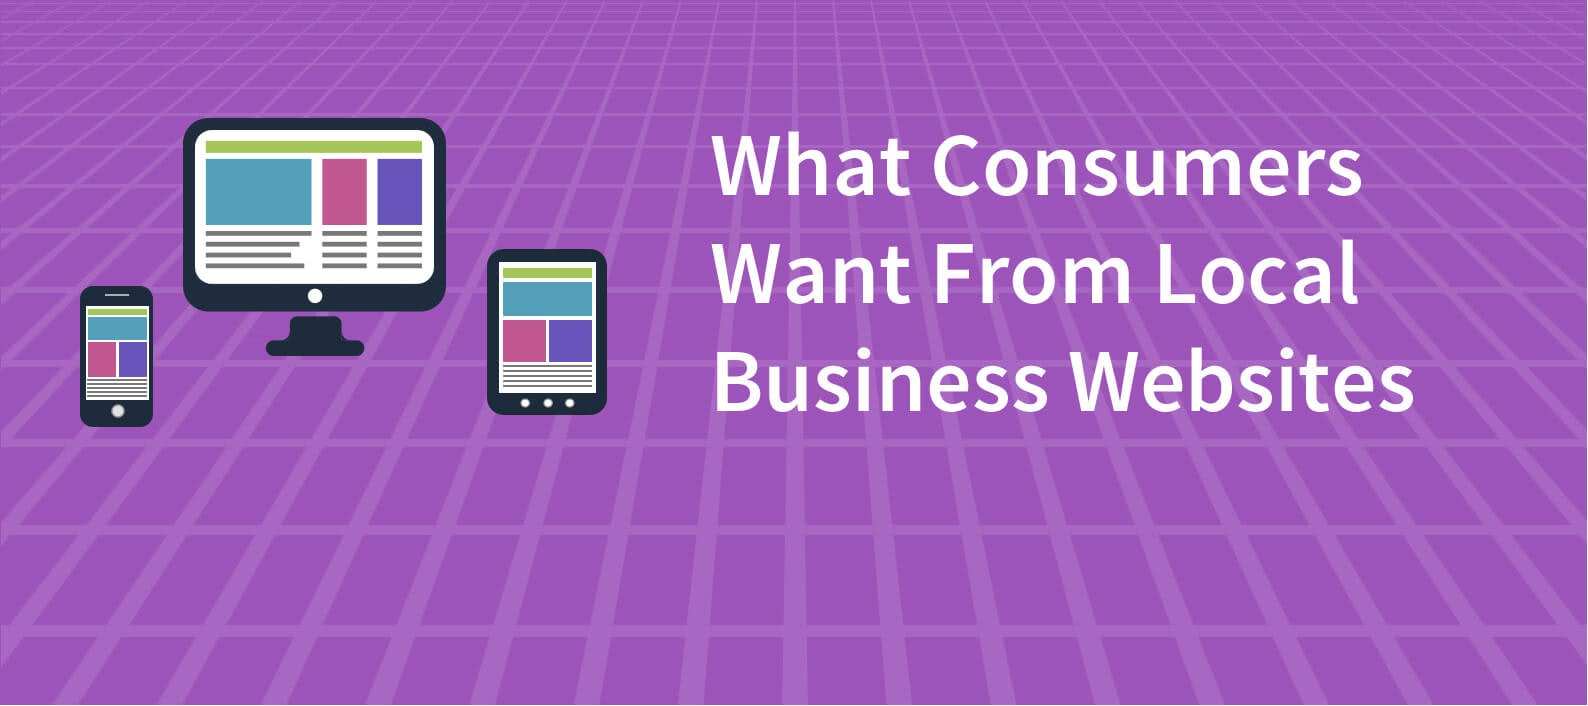 34% of consumers think a Smart Website gives a local business more credibility